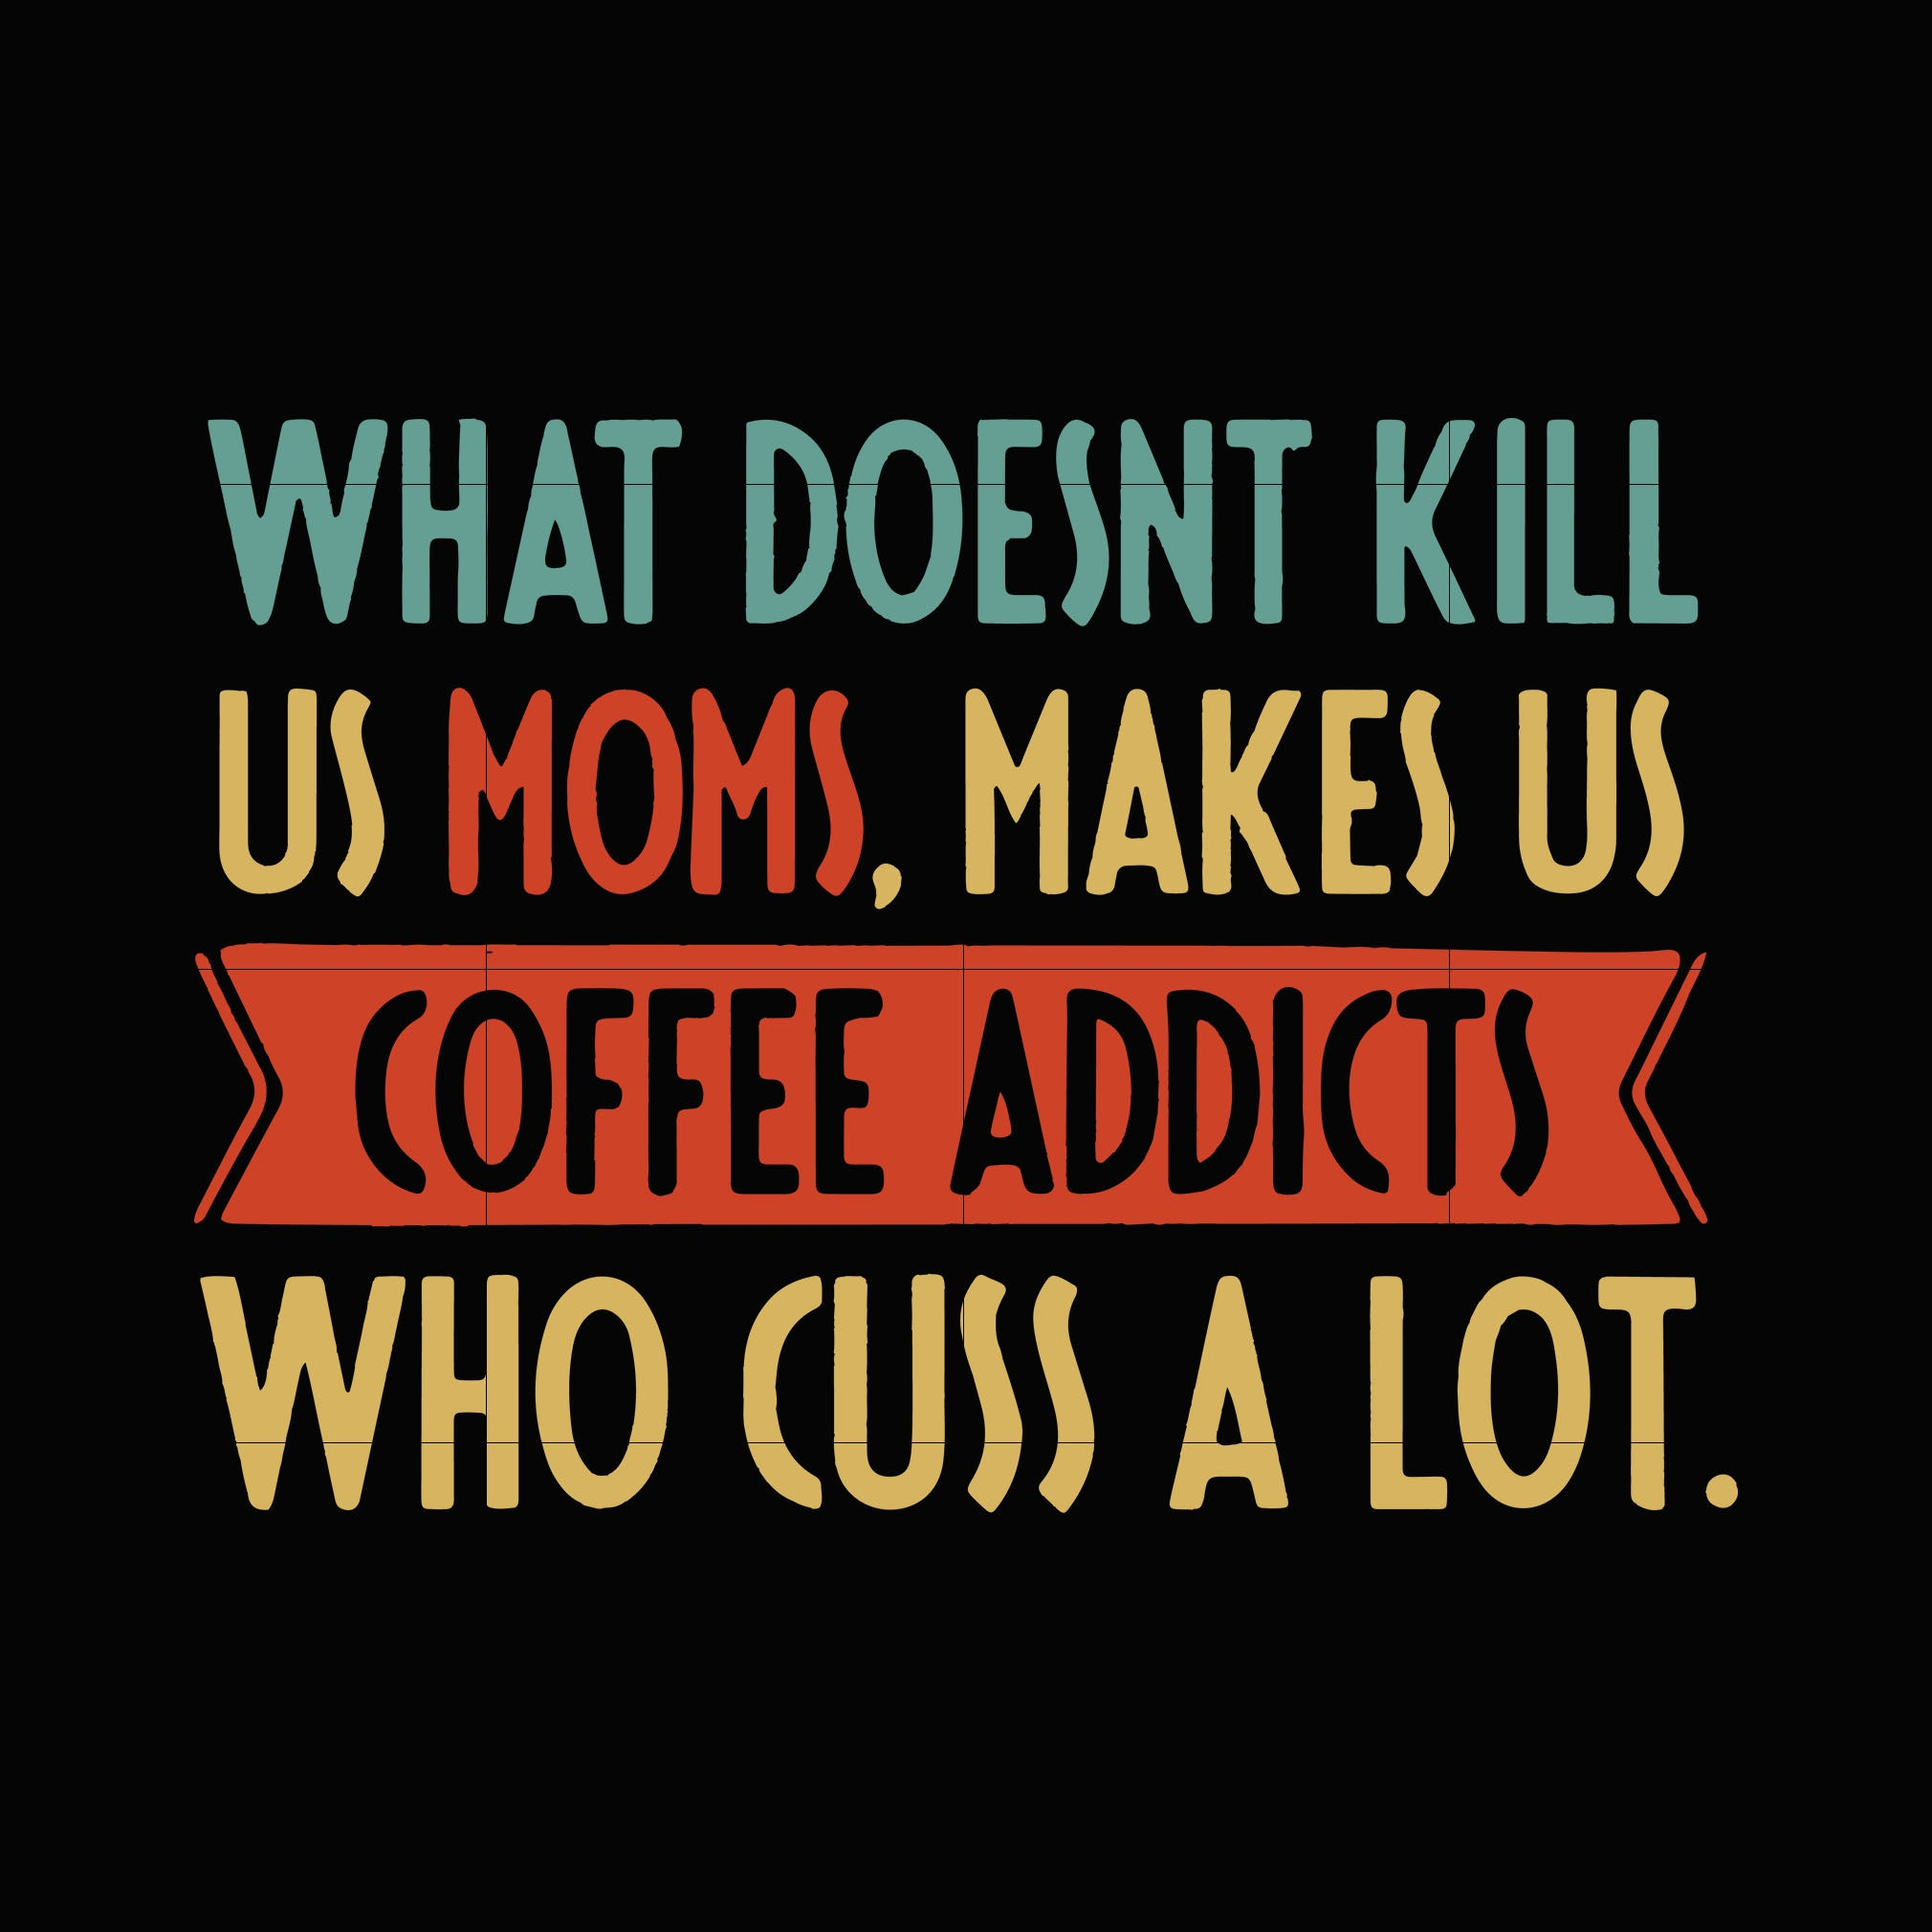 What doesnt kill us moms makes us coffee addicts who cuss a lot svg ,dxf,eps,png digital file